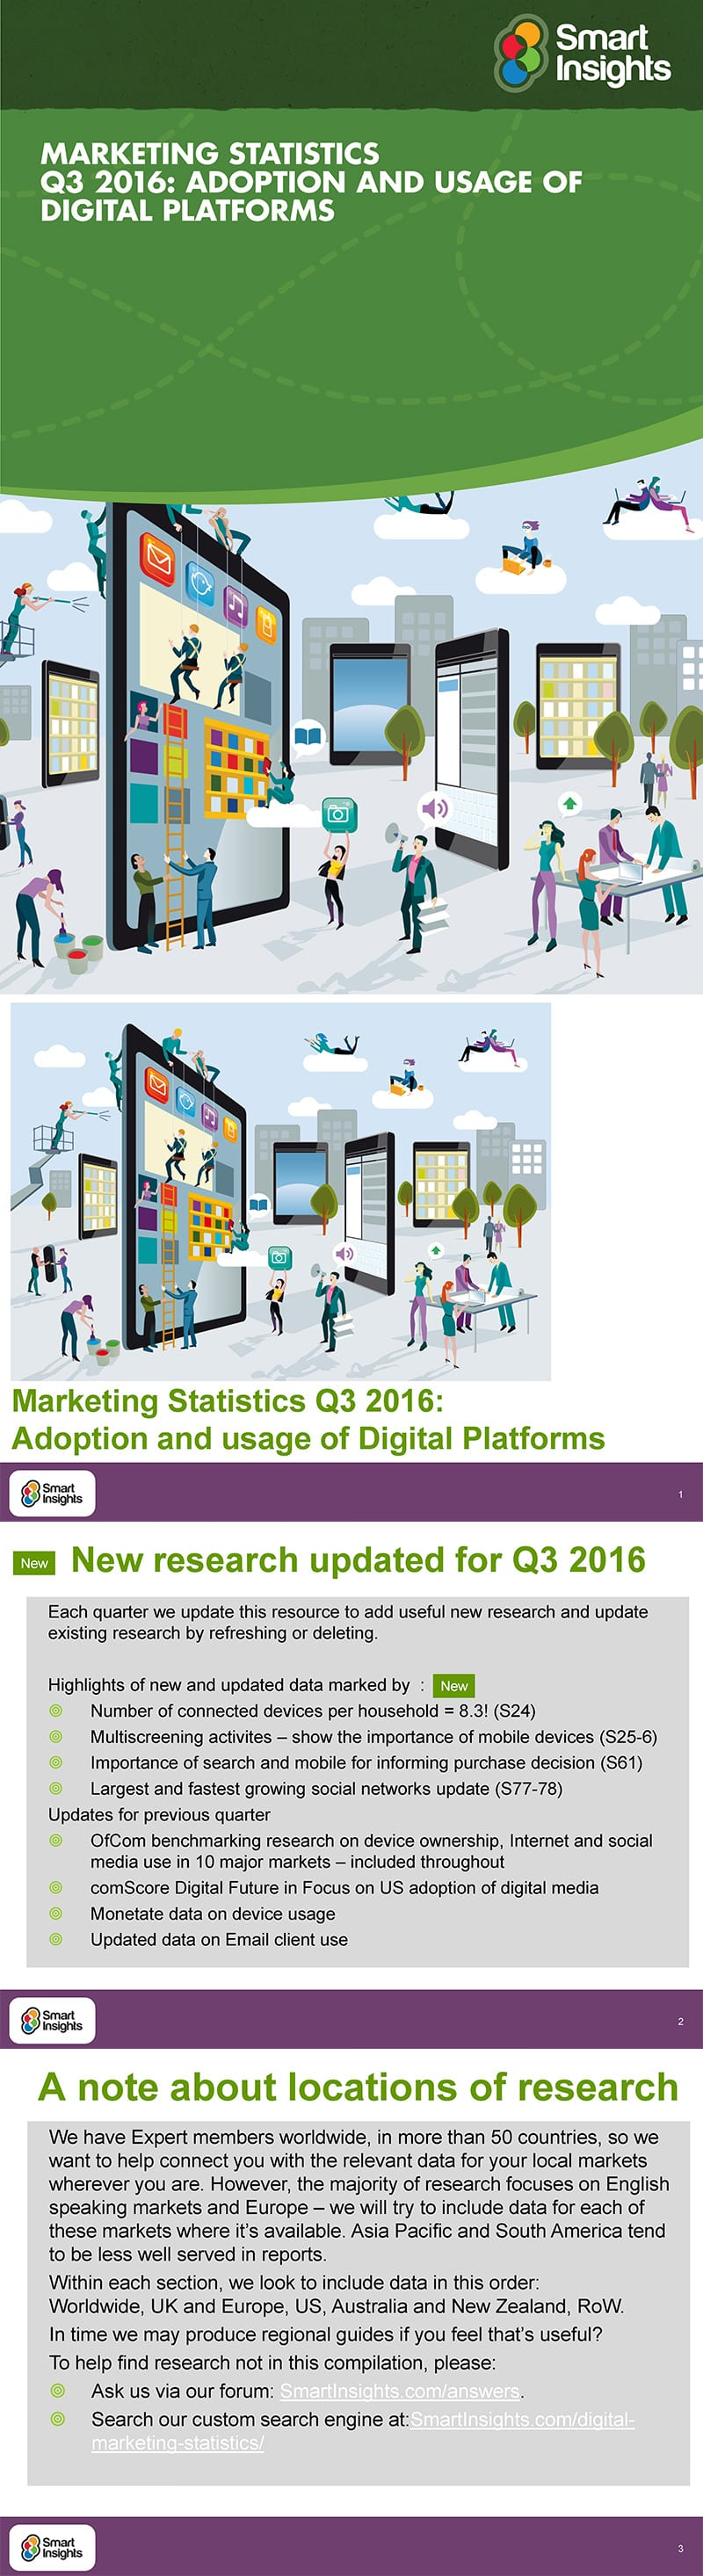 Q1 2017 Online Marketing Statistics Compilation – Adoption and Usage of Digital Platforms